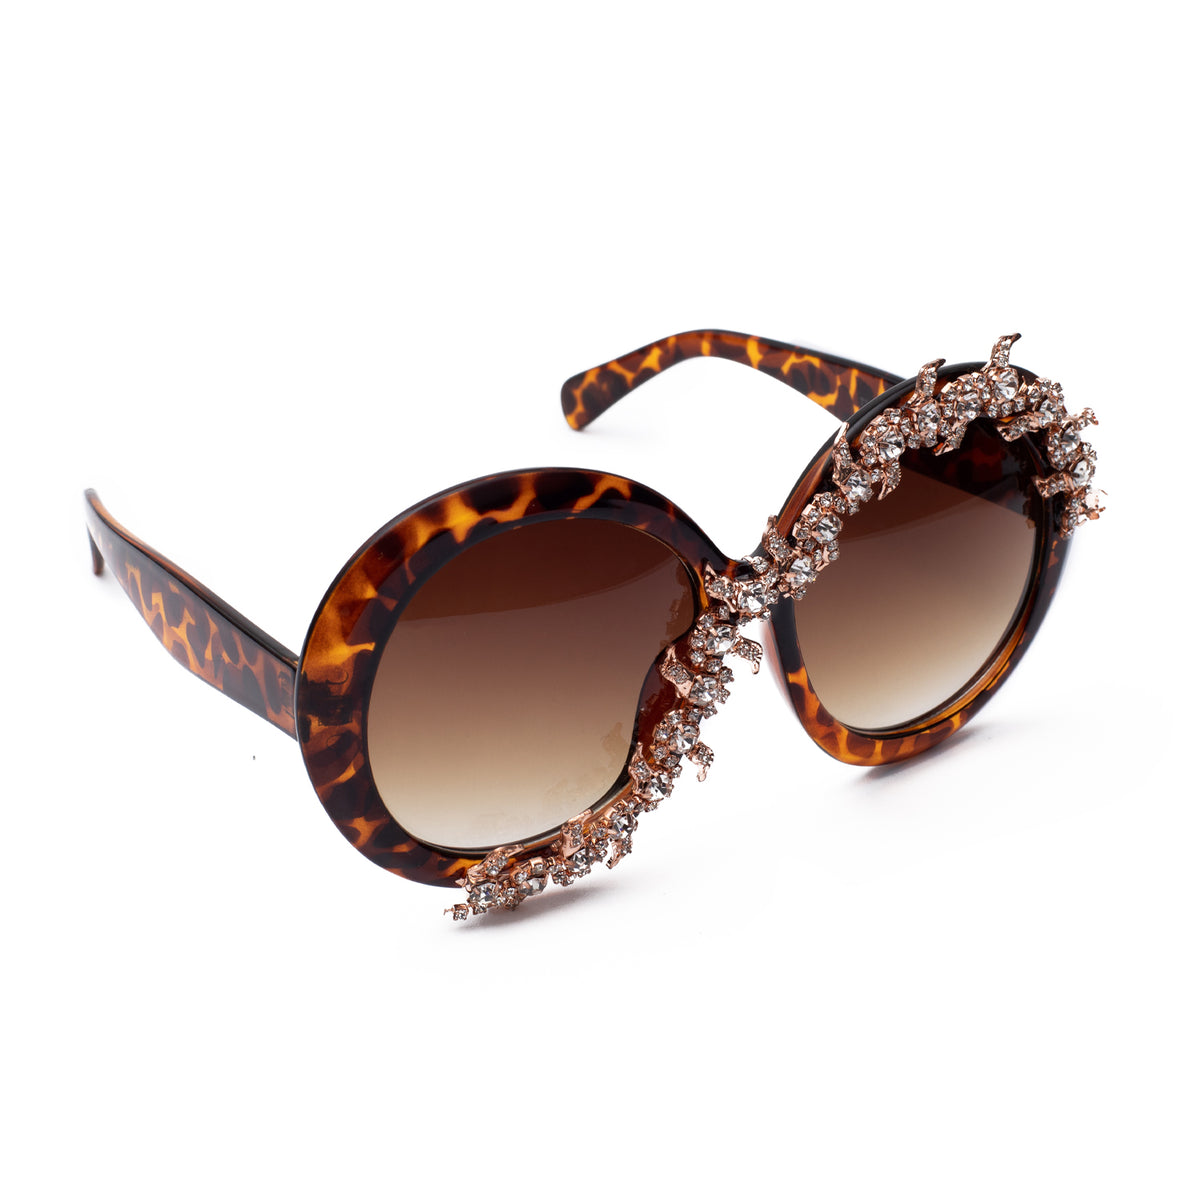 City of lights Cocoa glitz SUNNIES + OPTICS Sunglasses Collection- NRODA